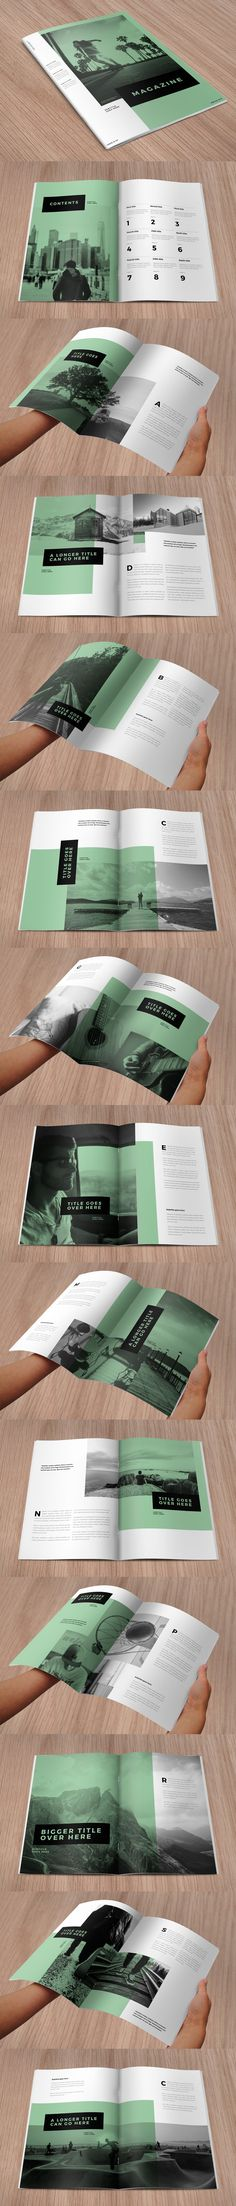 Clean, Modern and Simple Brochure Design Template InDesign INDD - 28 Custom Pages